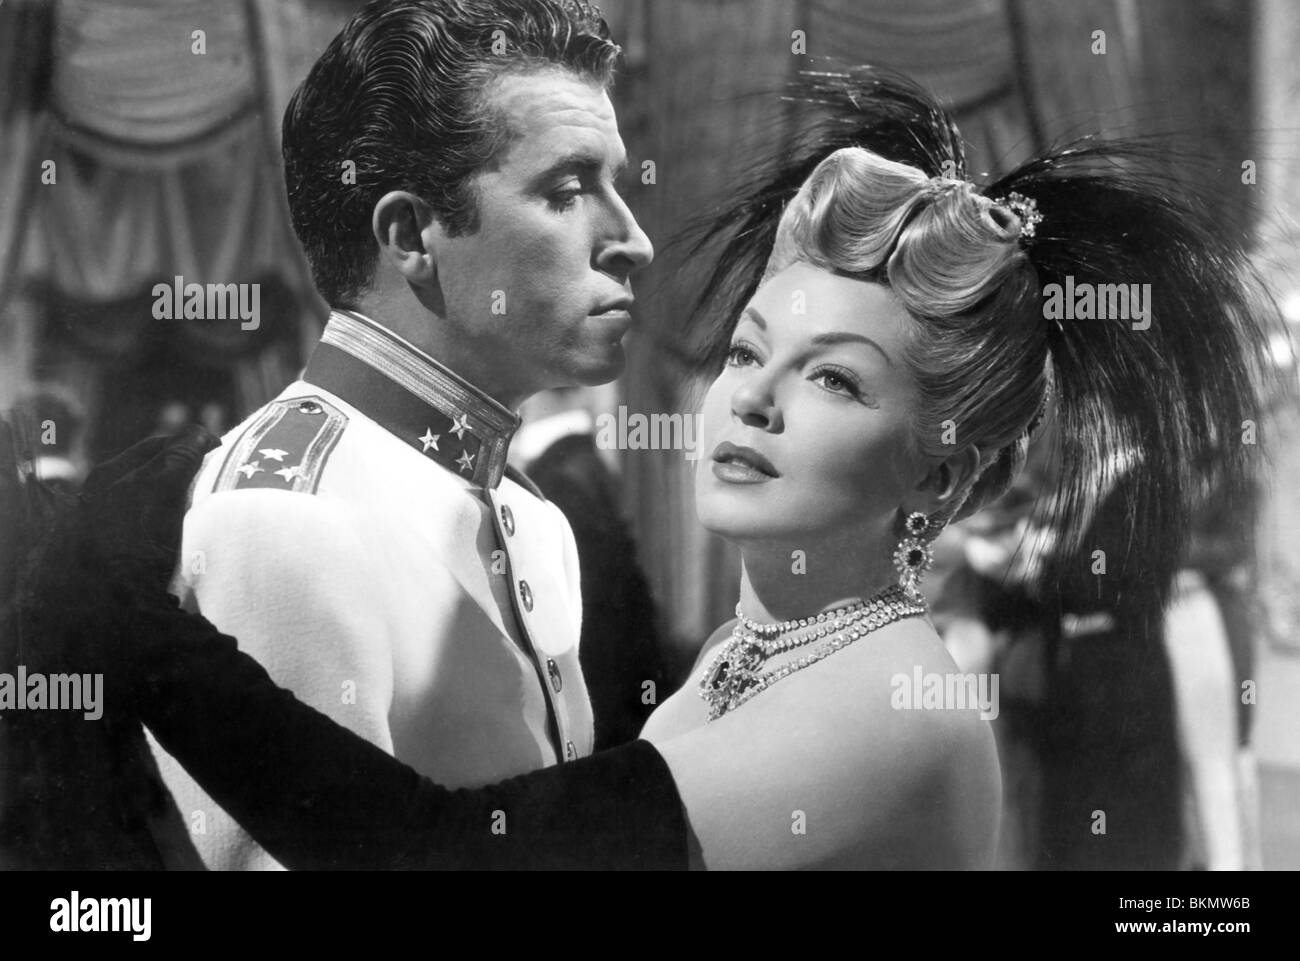 THE MERRY WIDOW (1952) FERNANDO LAMAS, LANA TURNER, CURTIS BURNHARDT (DIR) MRWW 007P - Stock Image